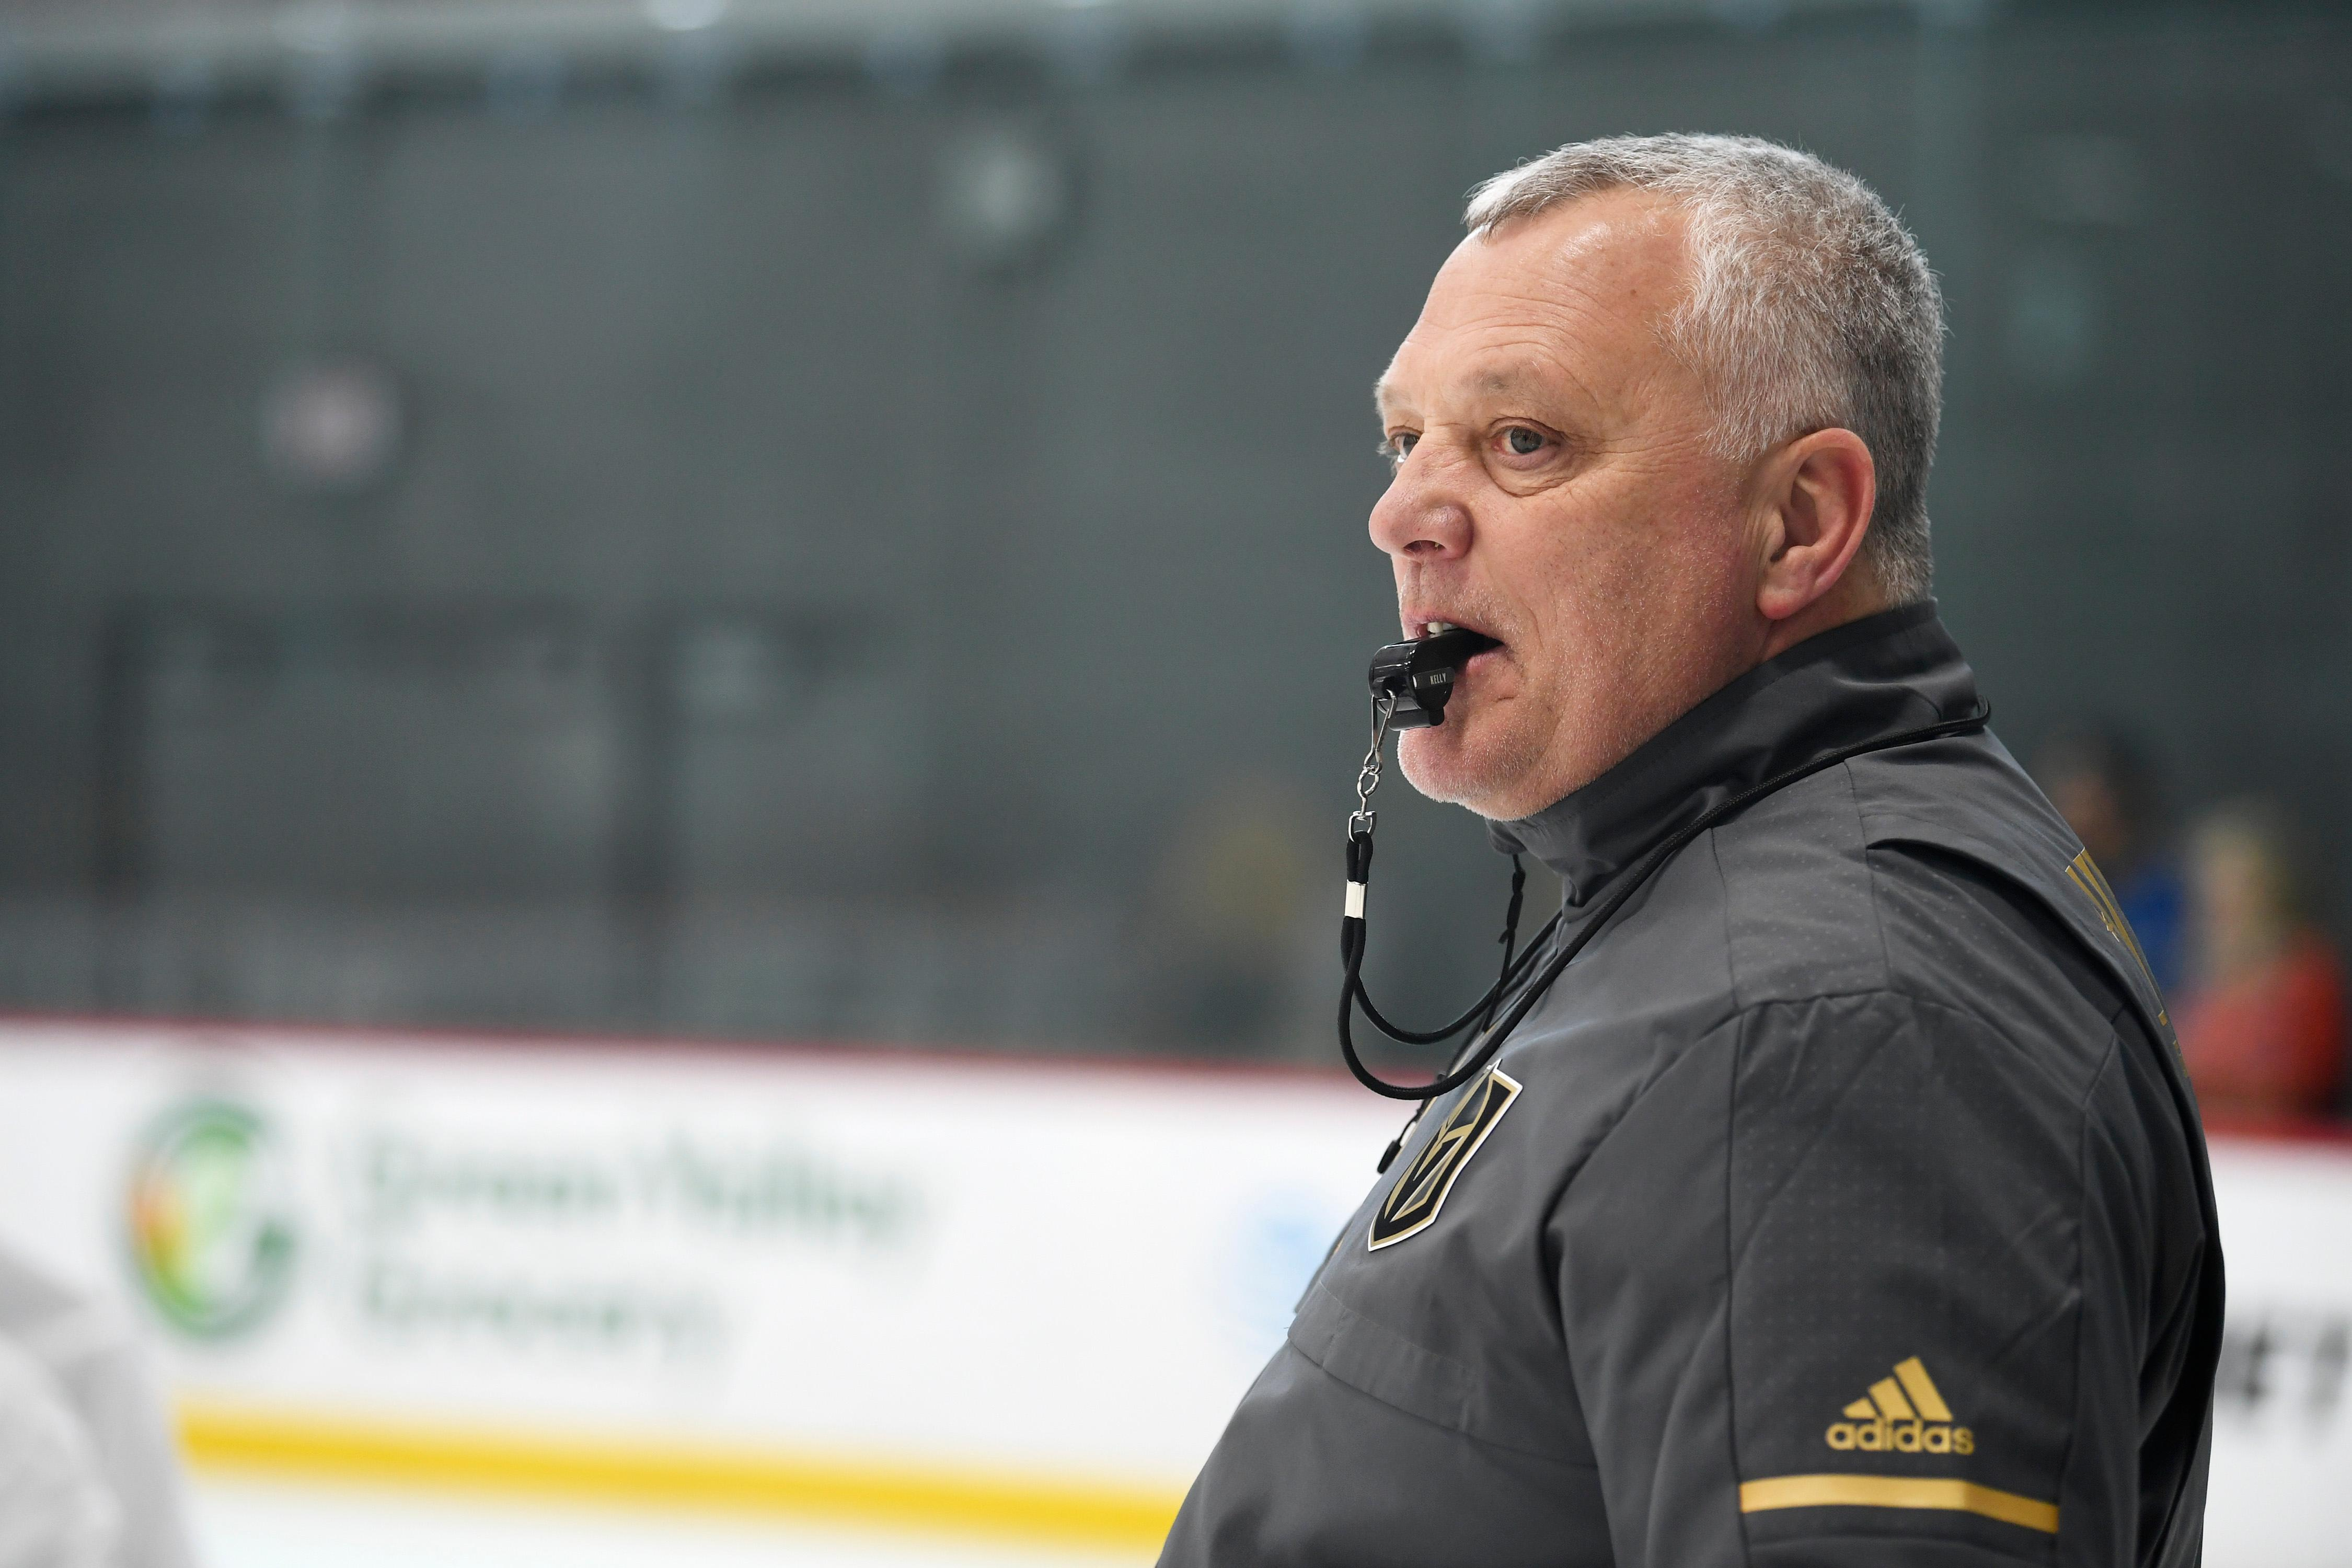 Vegas Golden Knights head coach Gerard Gallant watches his players during the Vegas Golden Knights practice Friday, April 20, 2018, at City National Arena in Las Vegas. CREDIT: Sam Morris/Las Vegas News Bureau